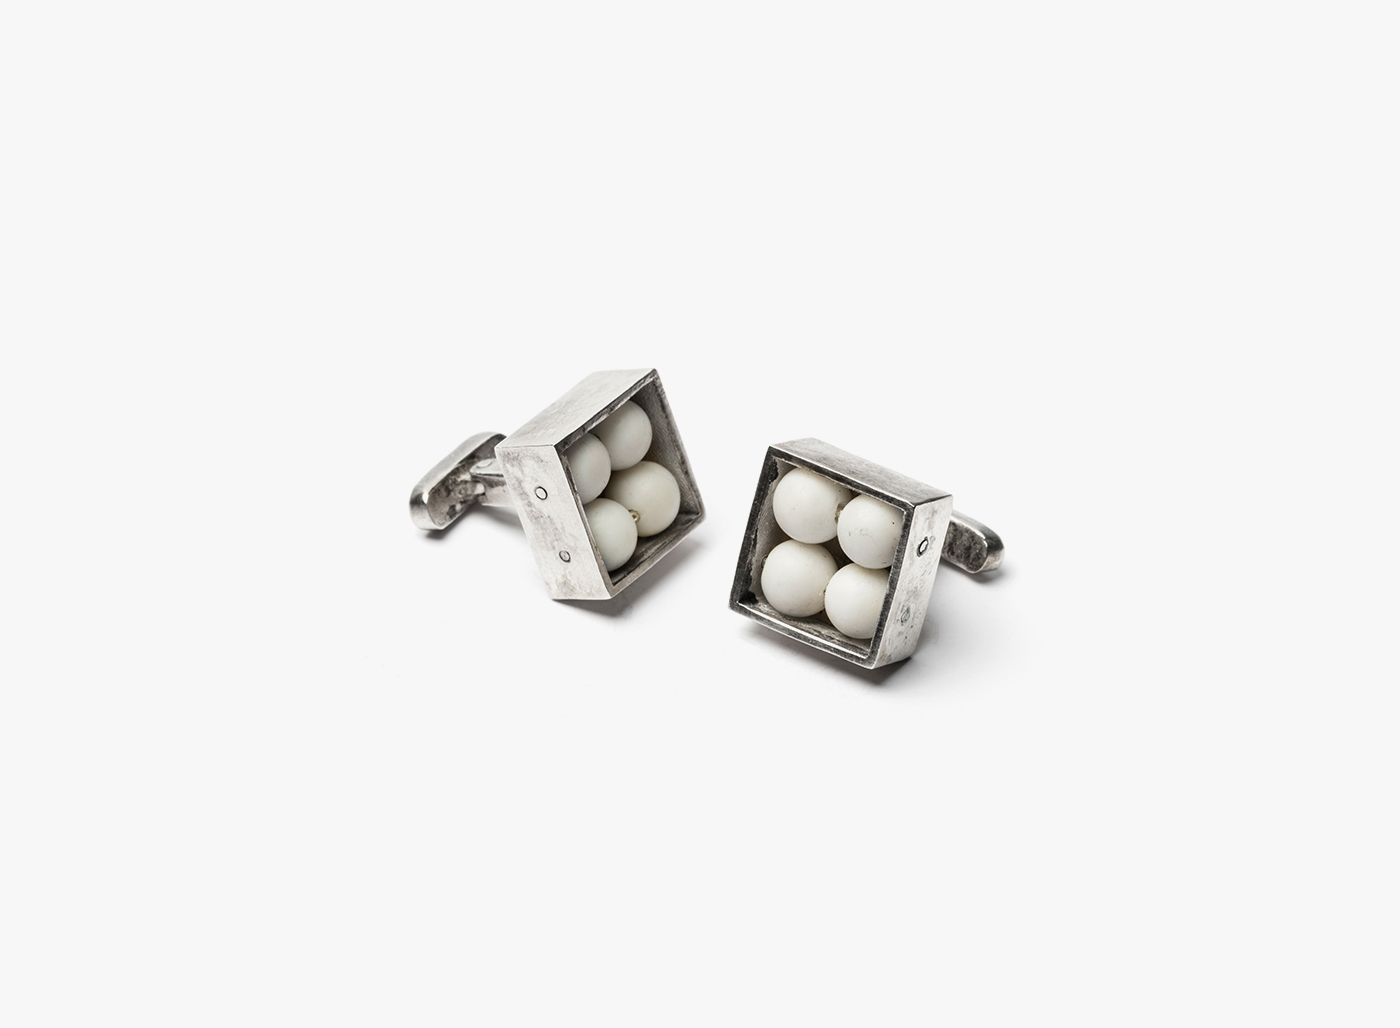 Image of 4 White Onyx in Square Cufflinks